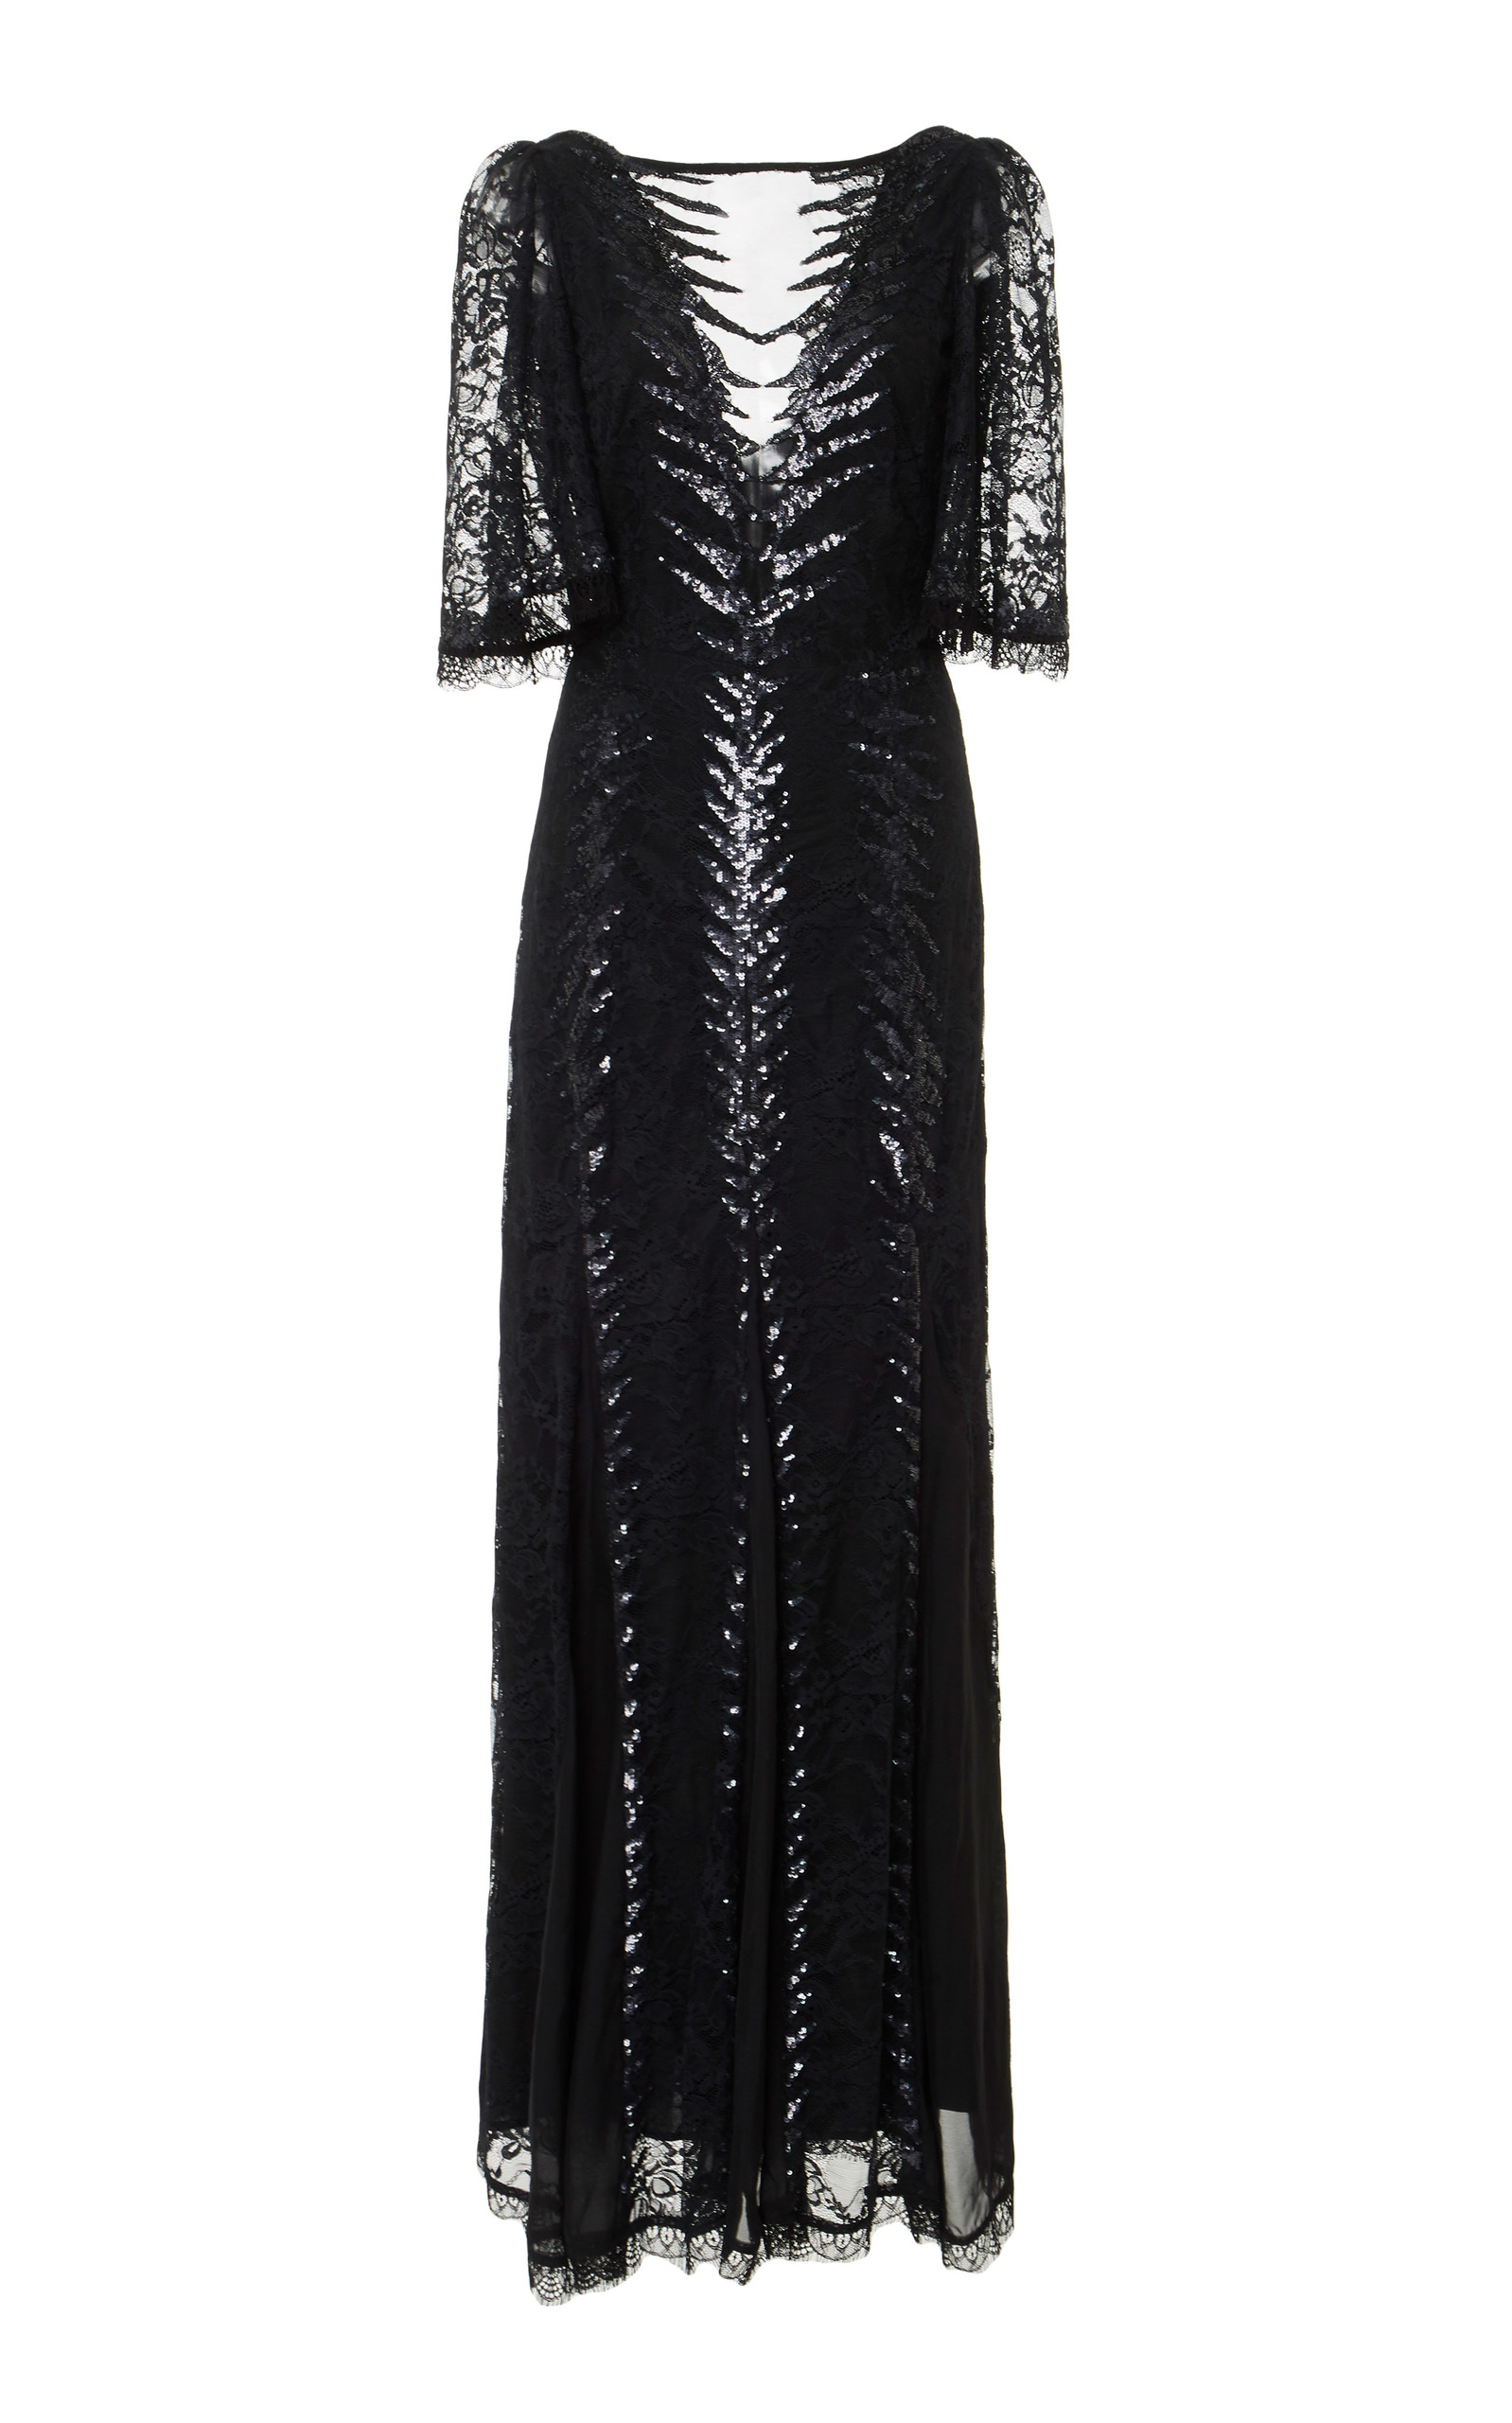 Temperley London PANTHER LACE DRESS